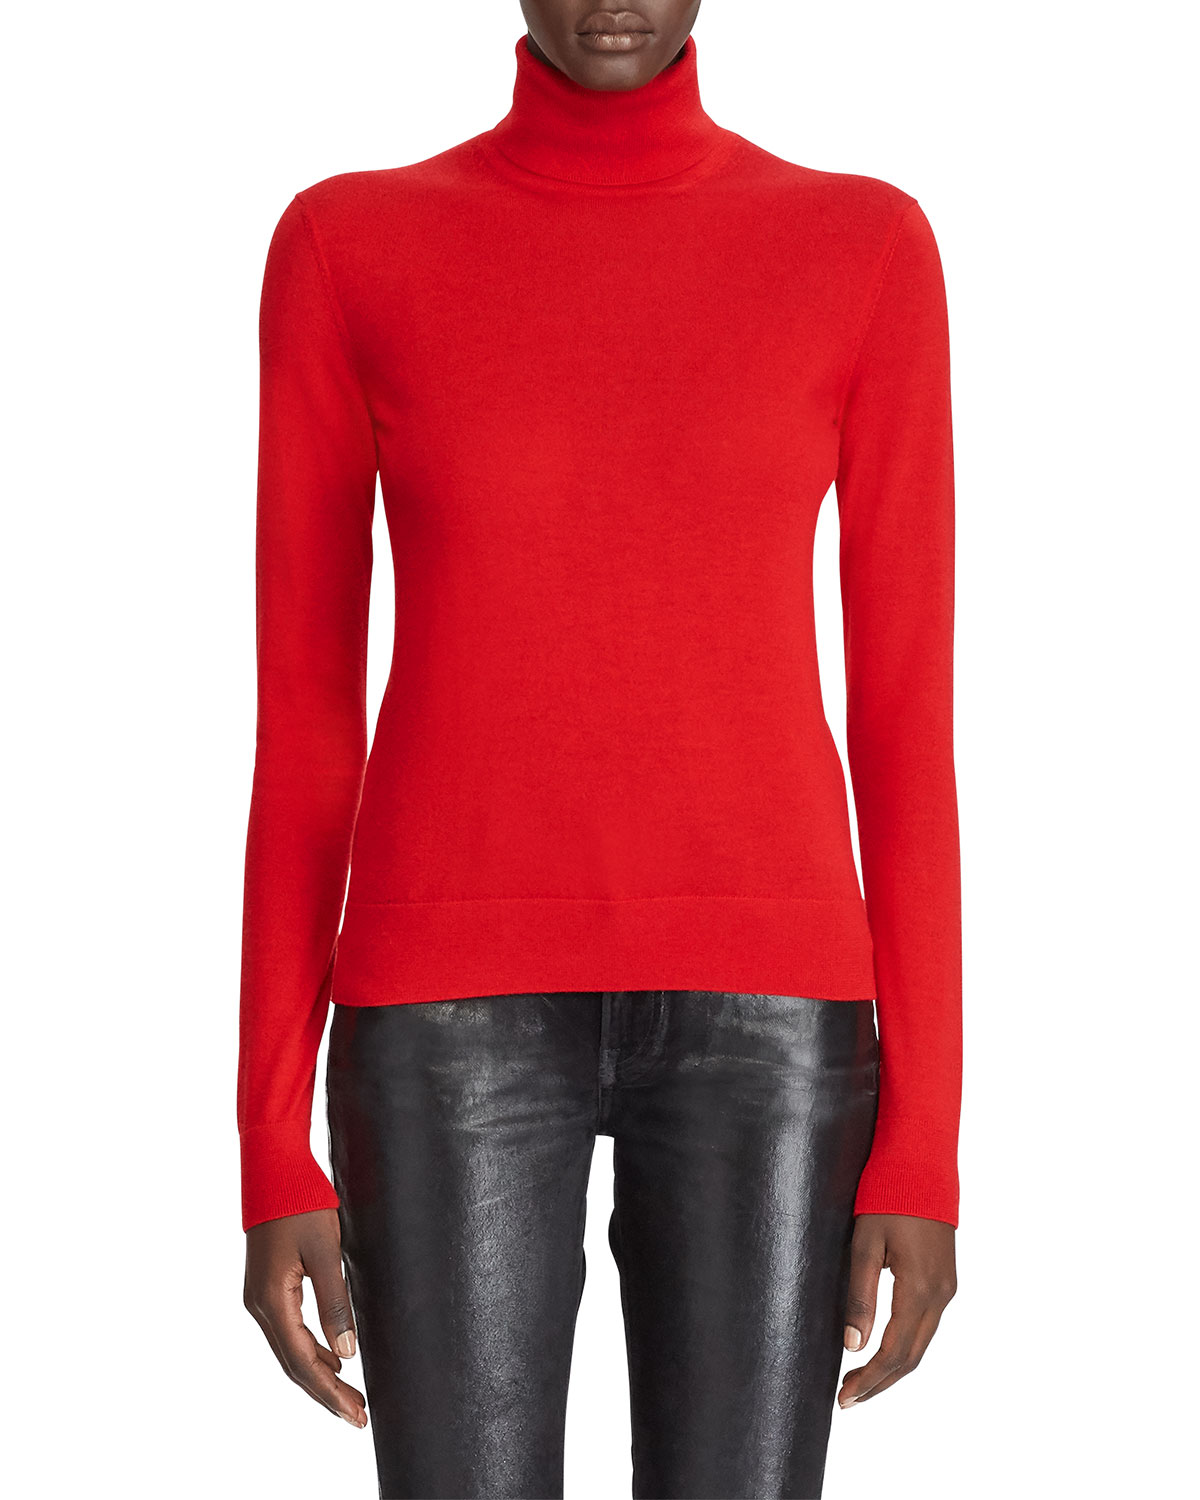 Ralph Lauren Sweaters CASHMERE JERSEY TURTLENECK SWEATER, RED